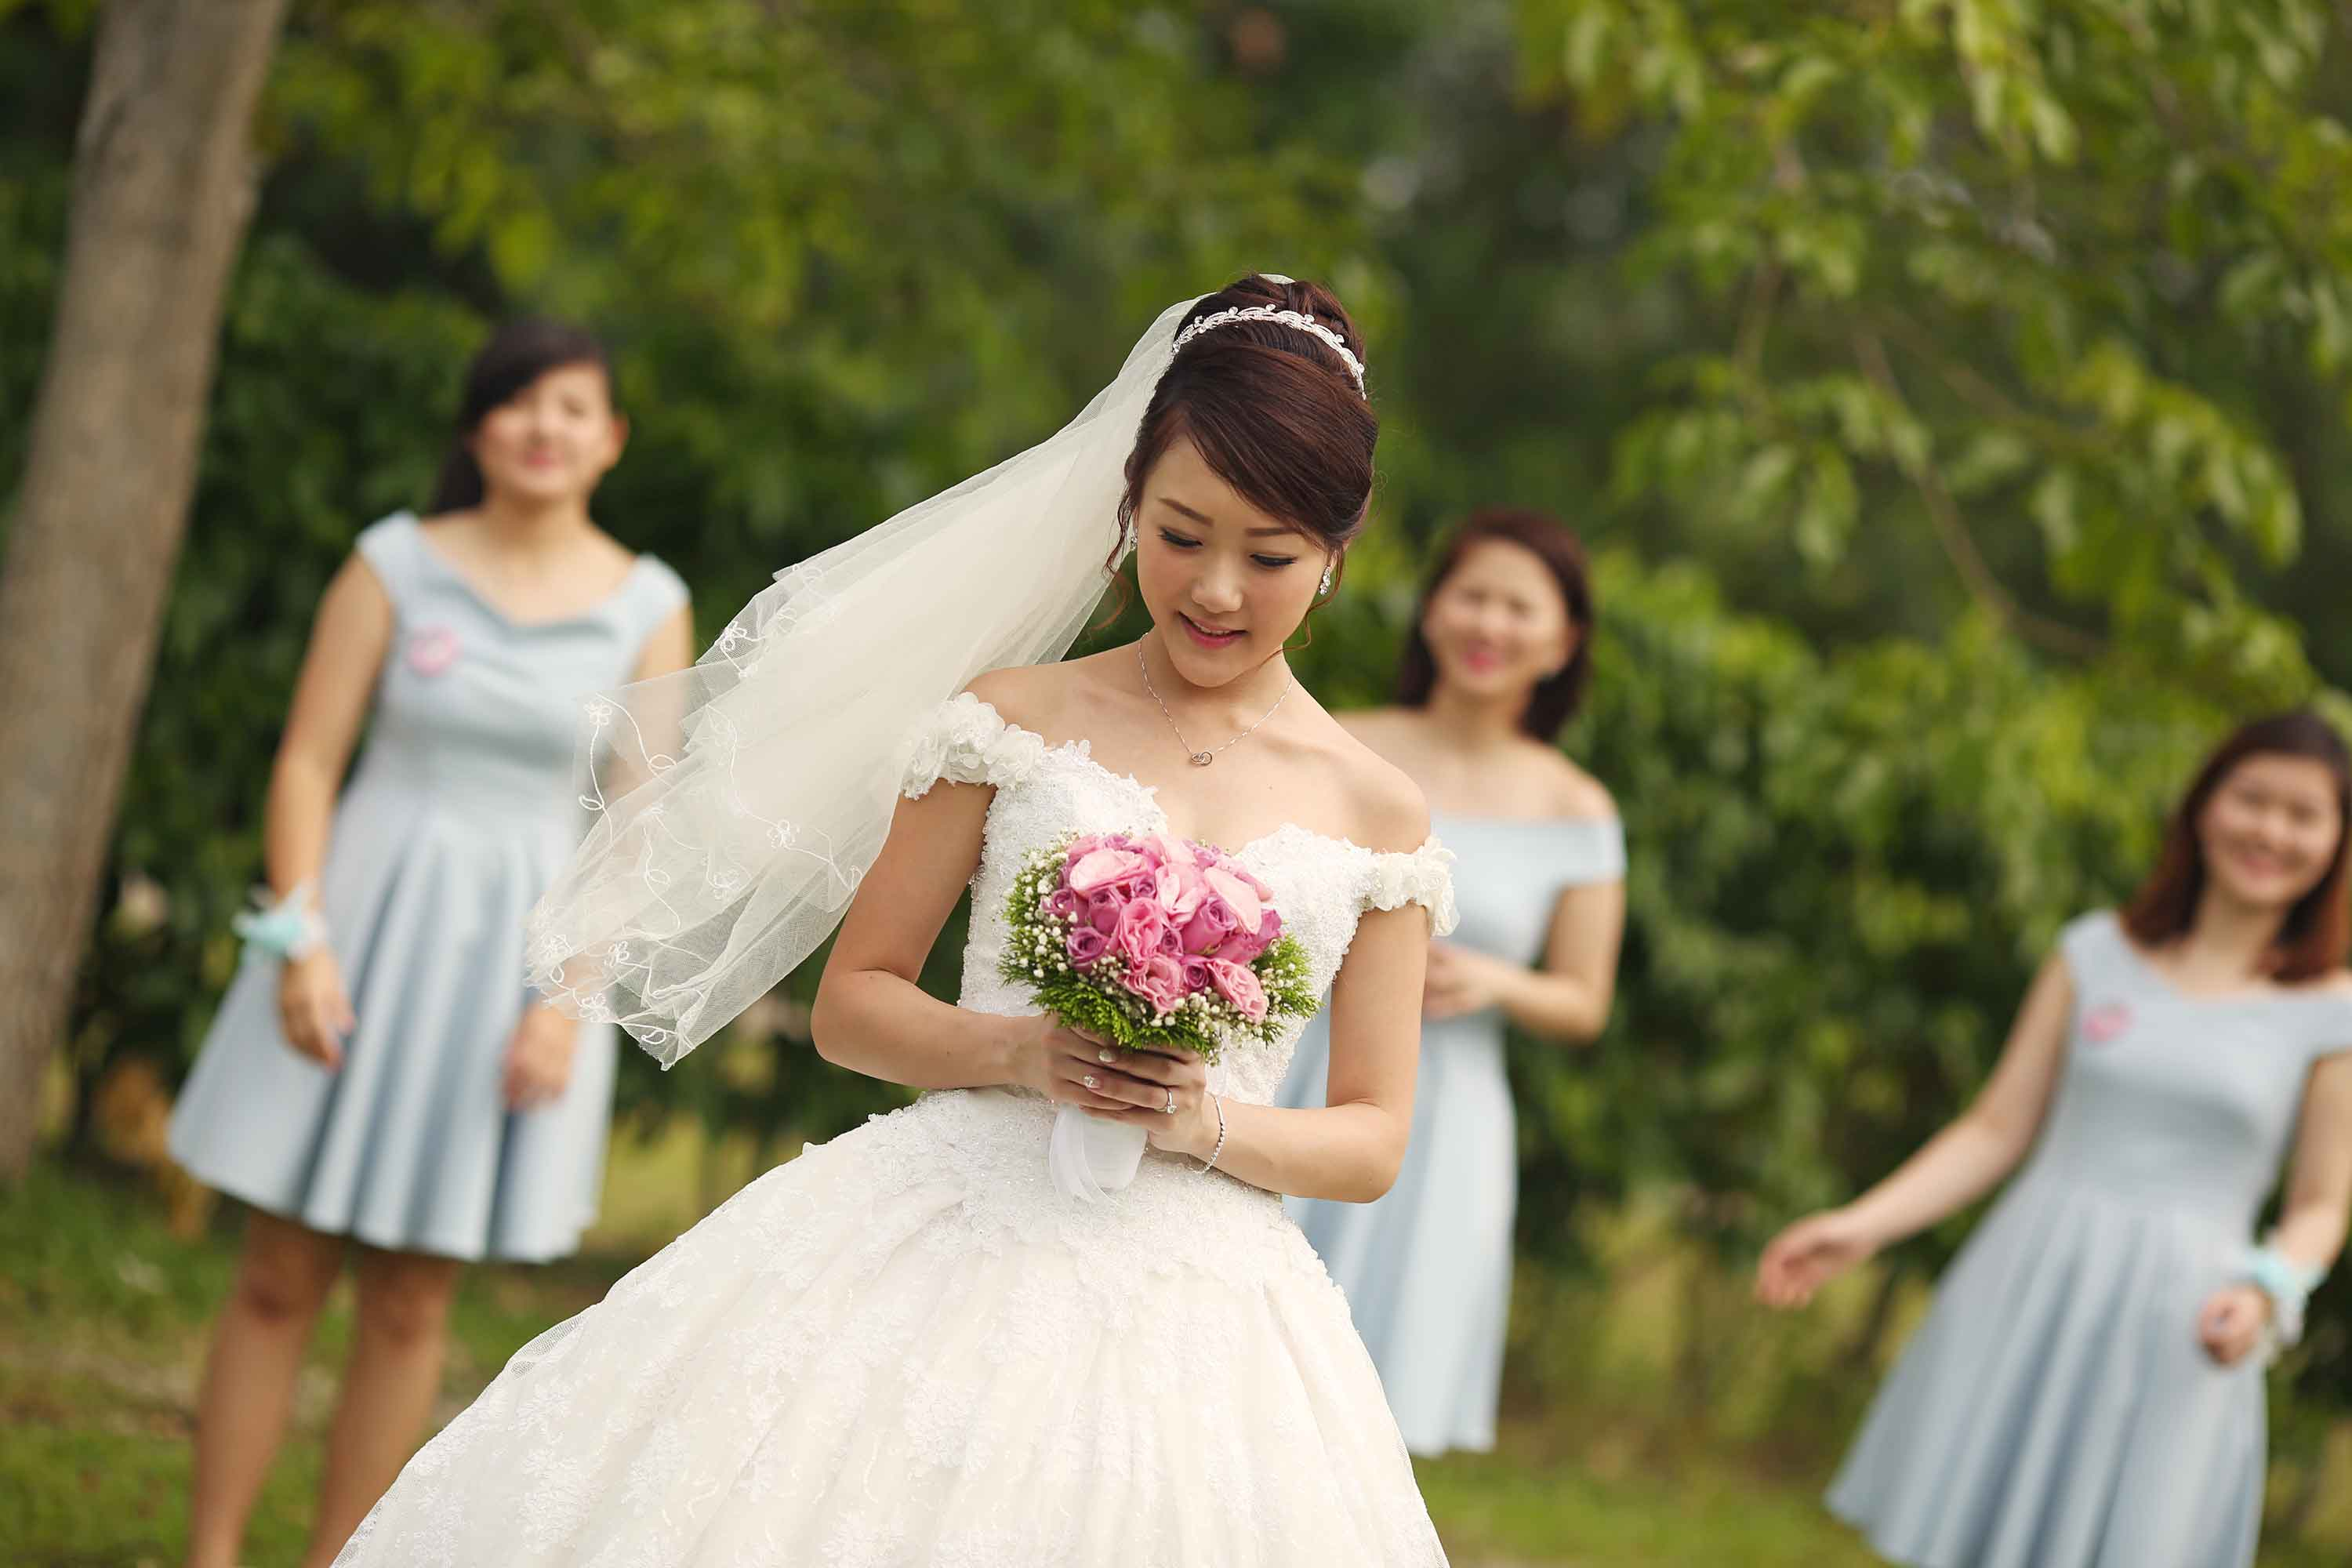 Fullsize Of The Wedding Bride